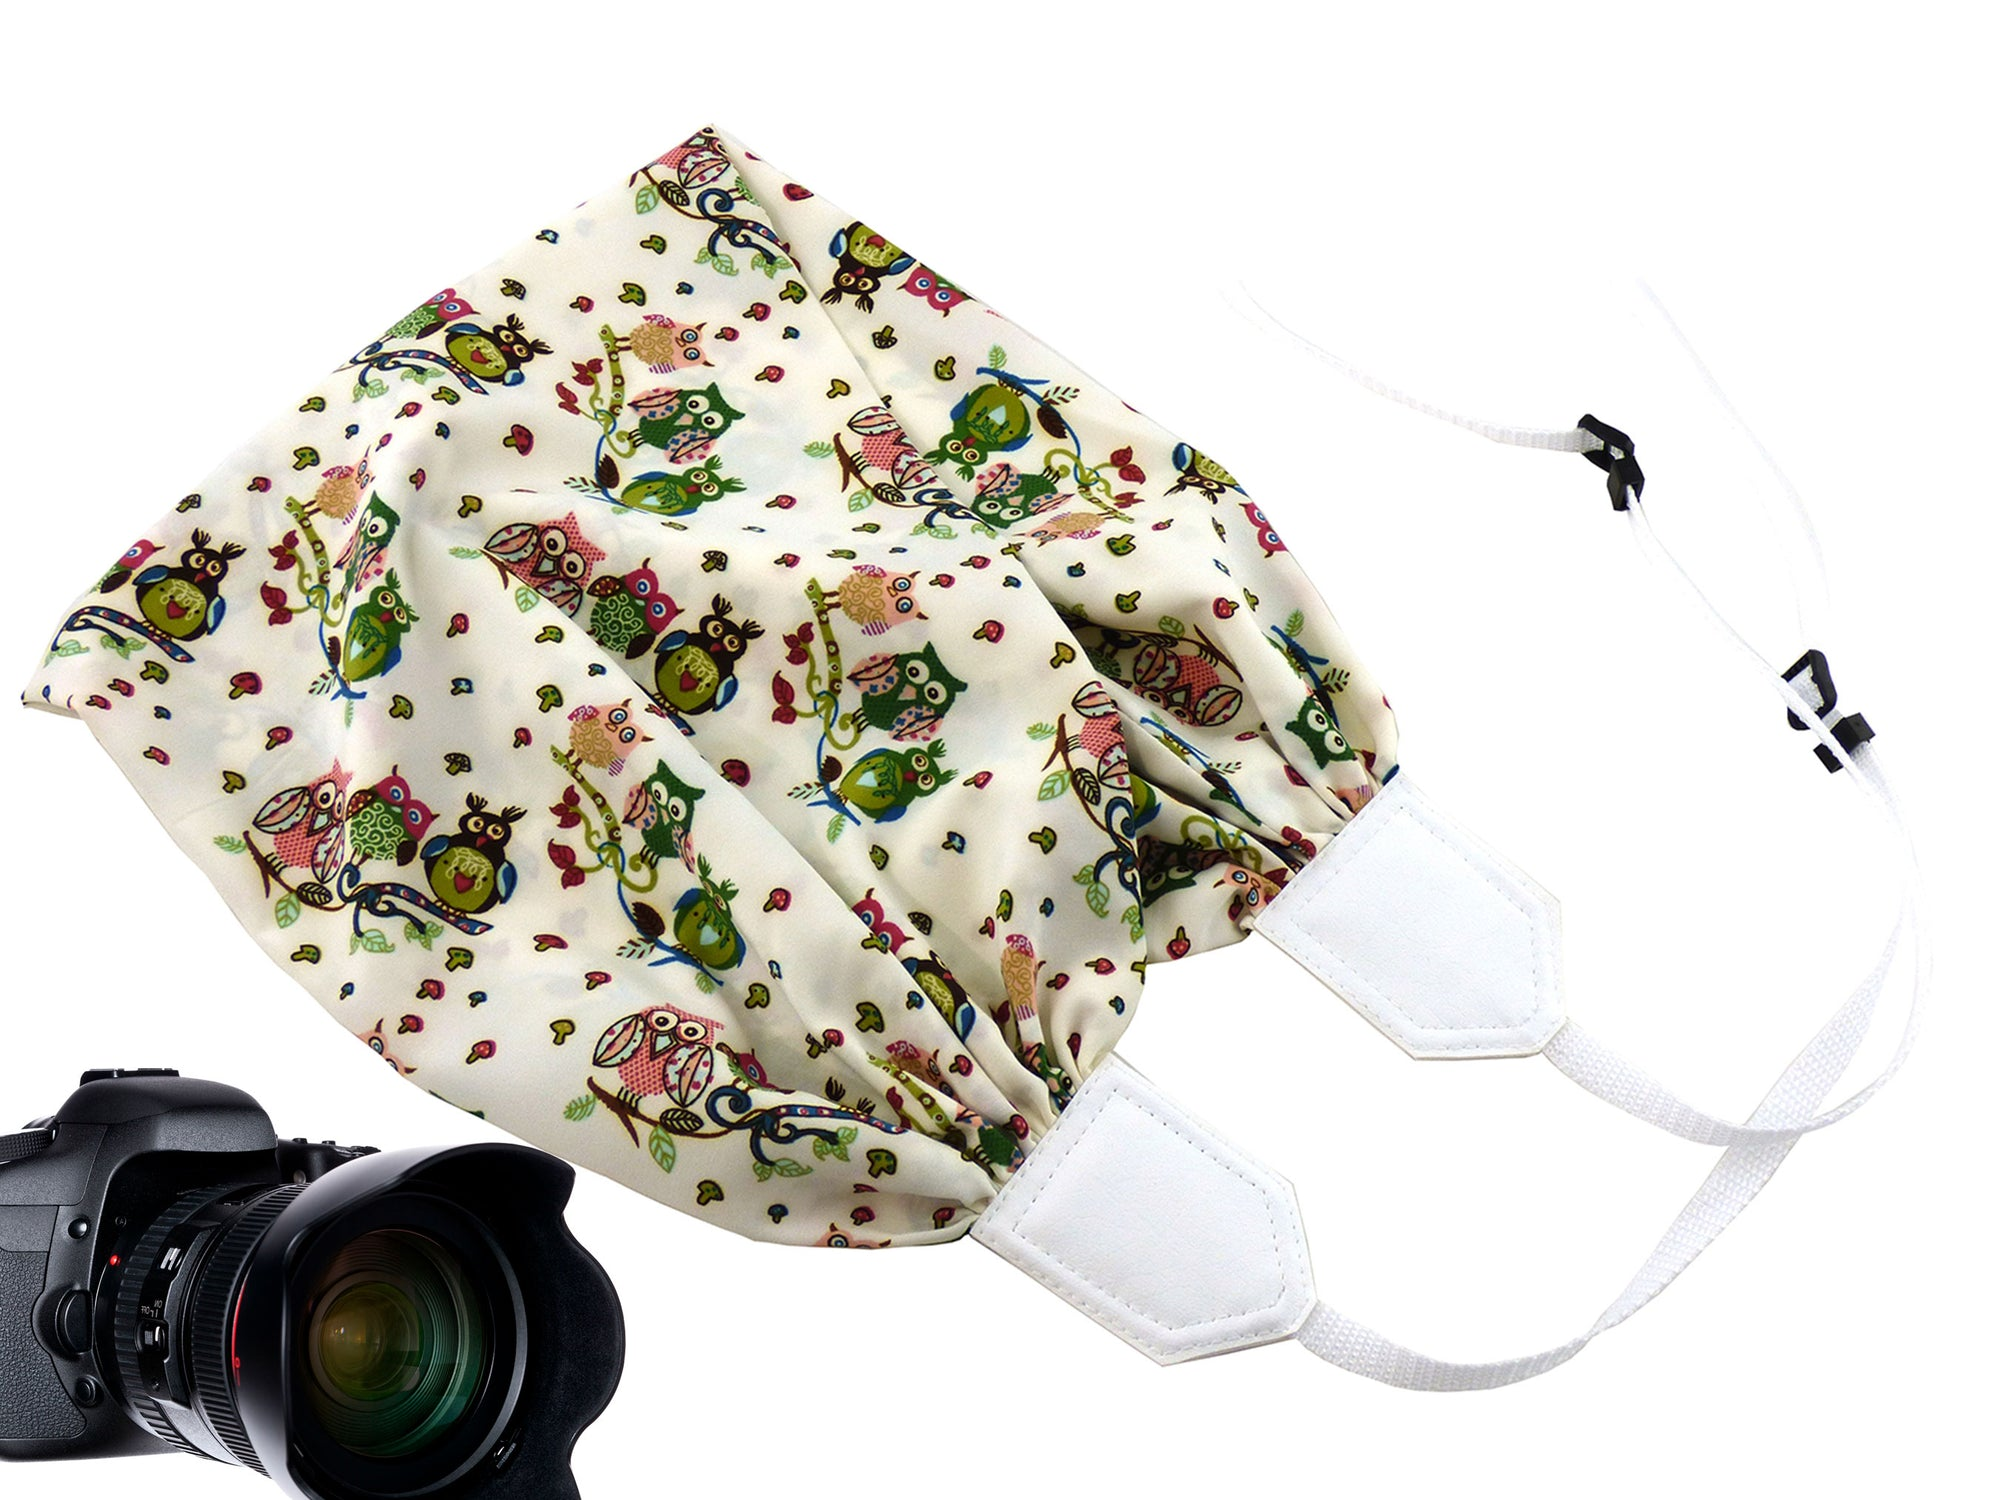 Scarf camera strap with owls. White DSLR Camera Strap with flowers and birds.